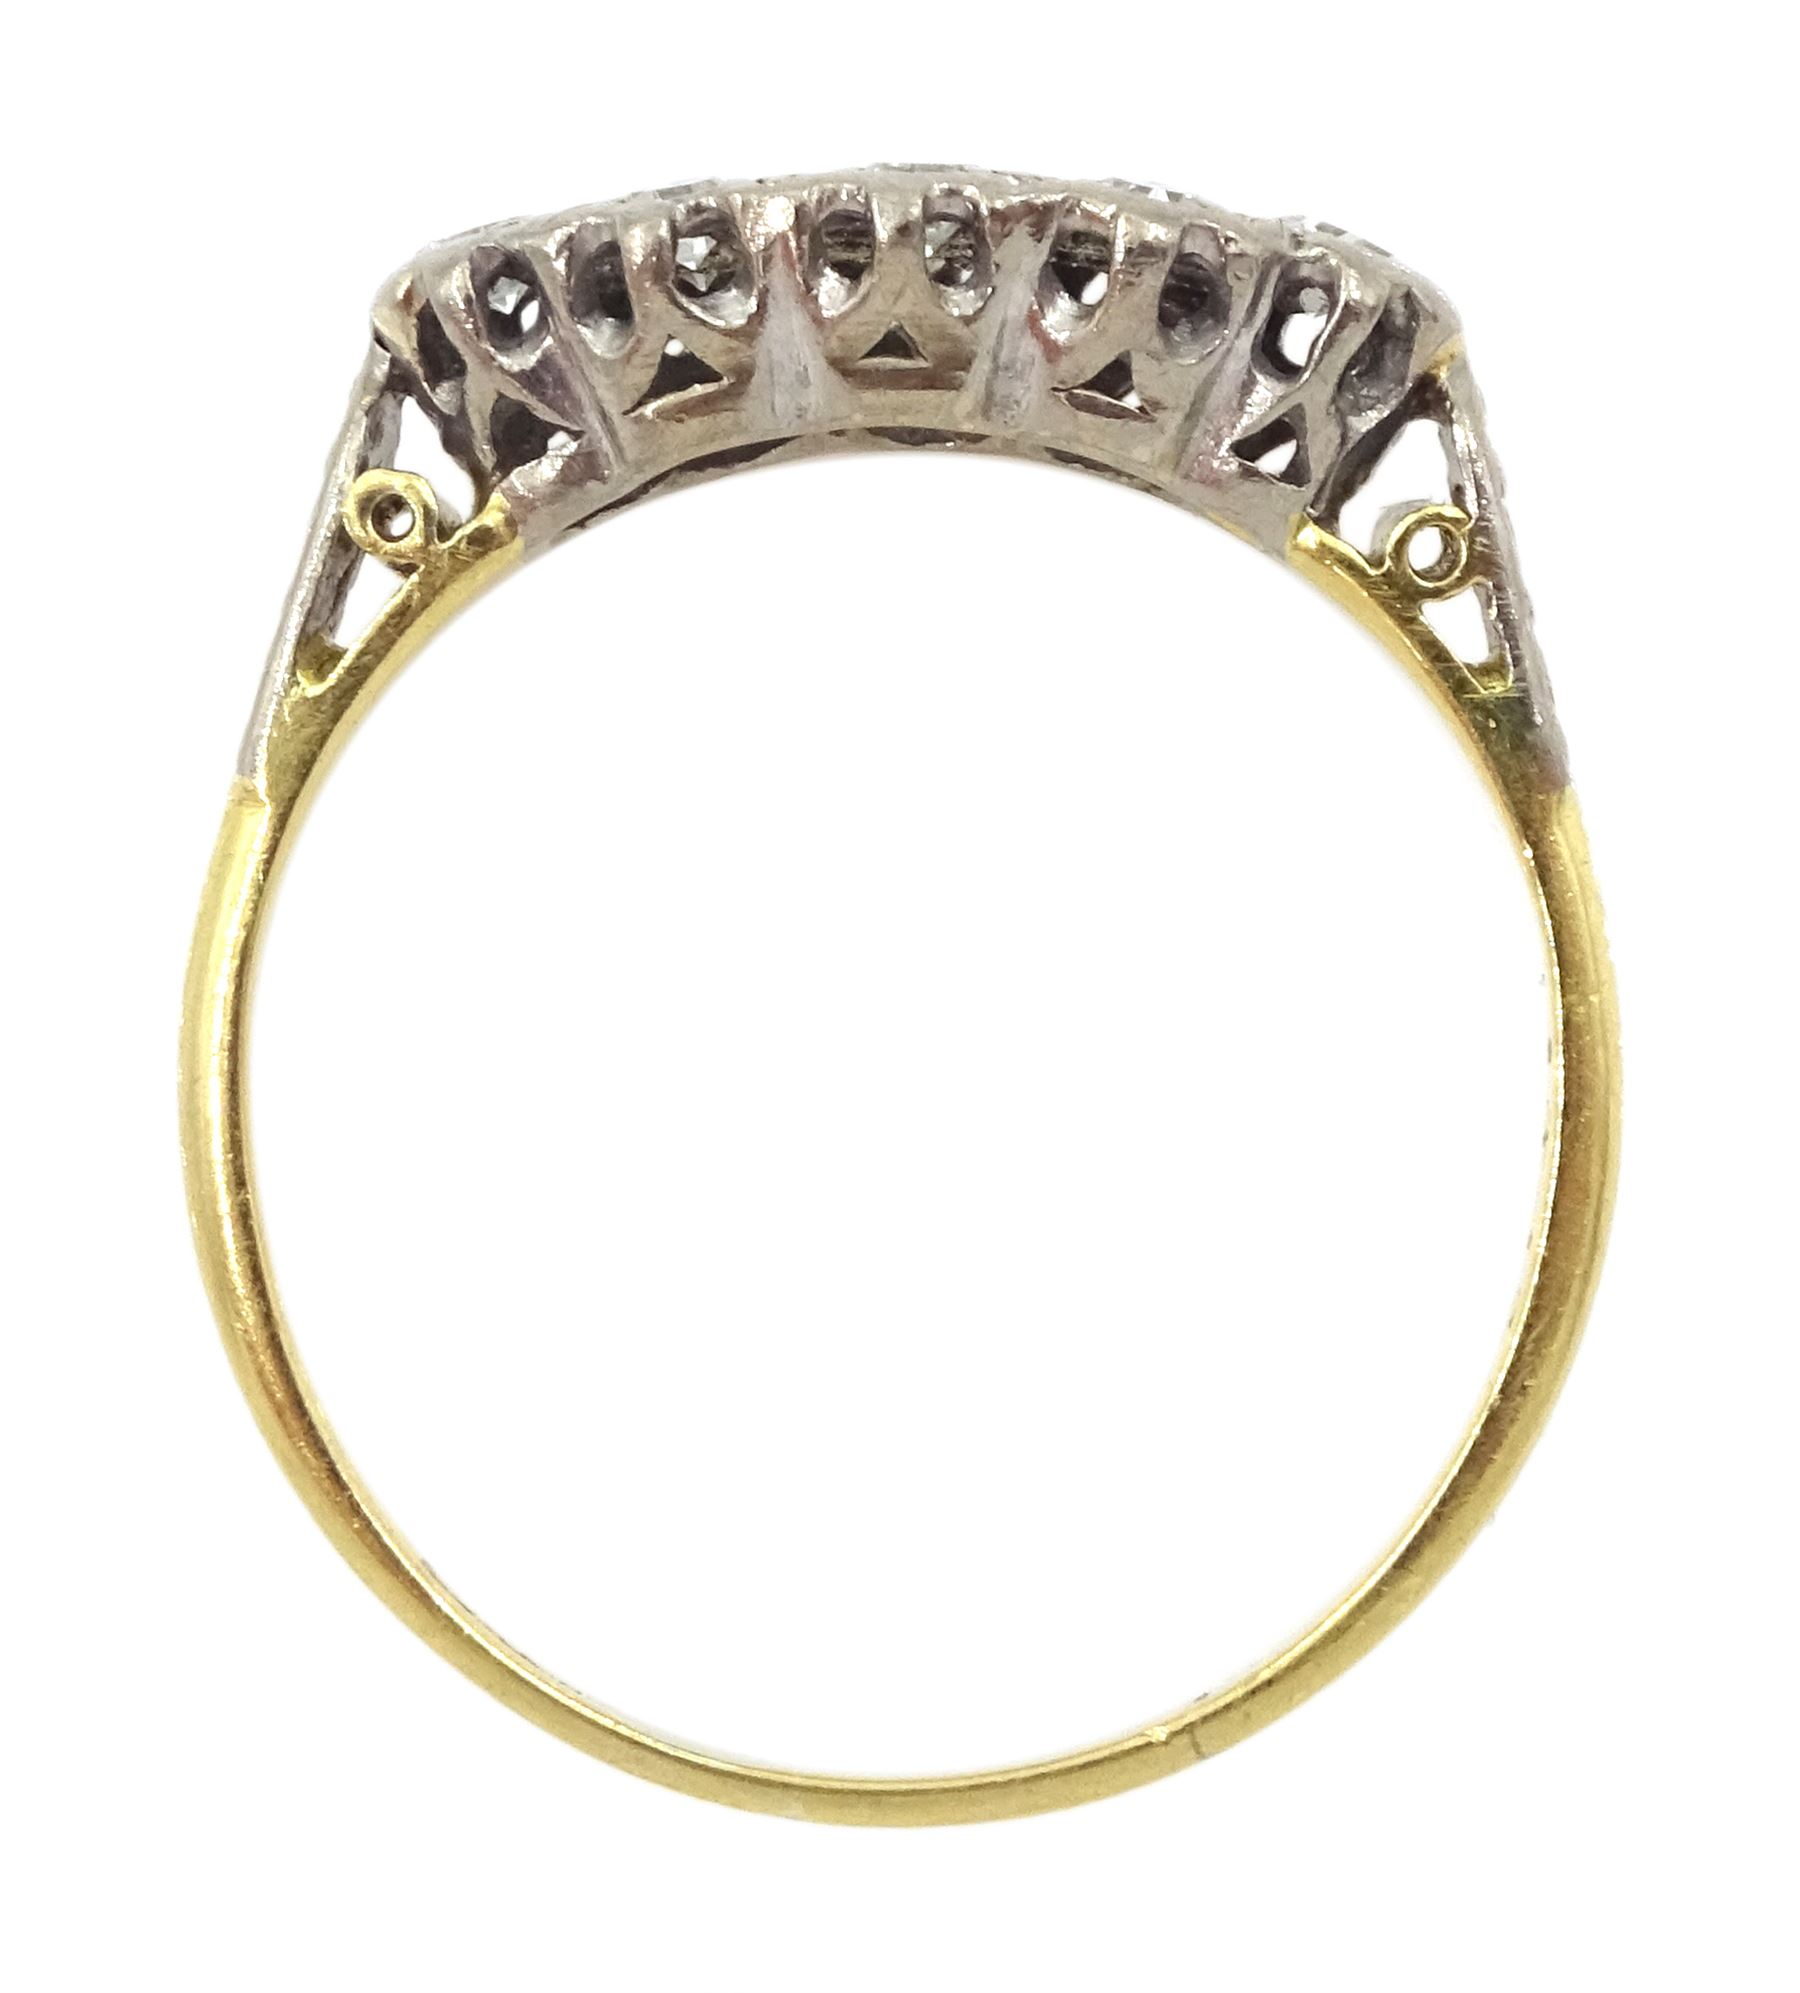 18ct gold two row old cut diamond ring - Image 4 of 4